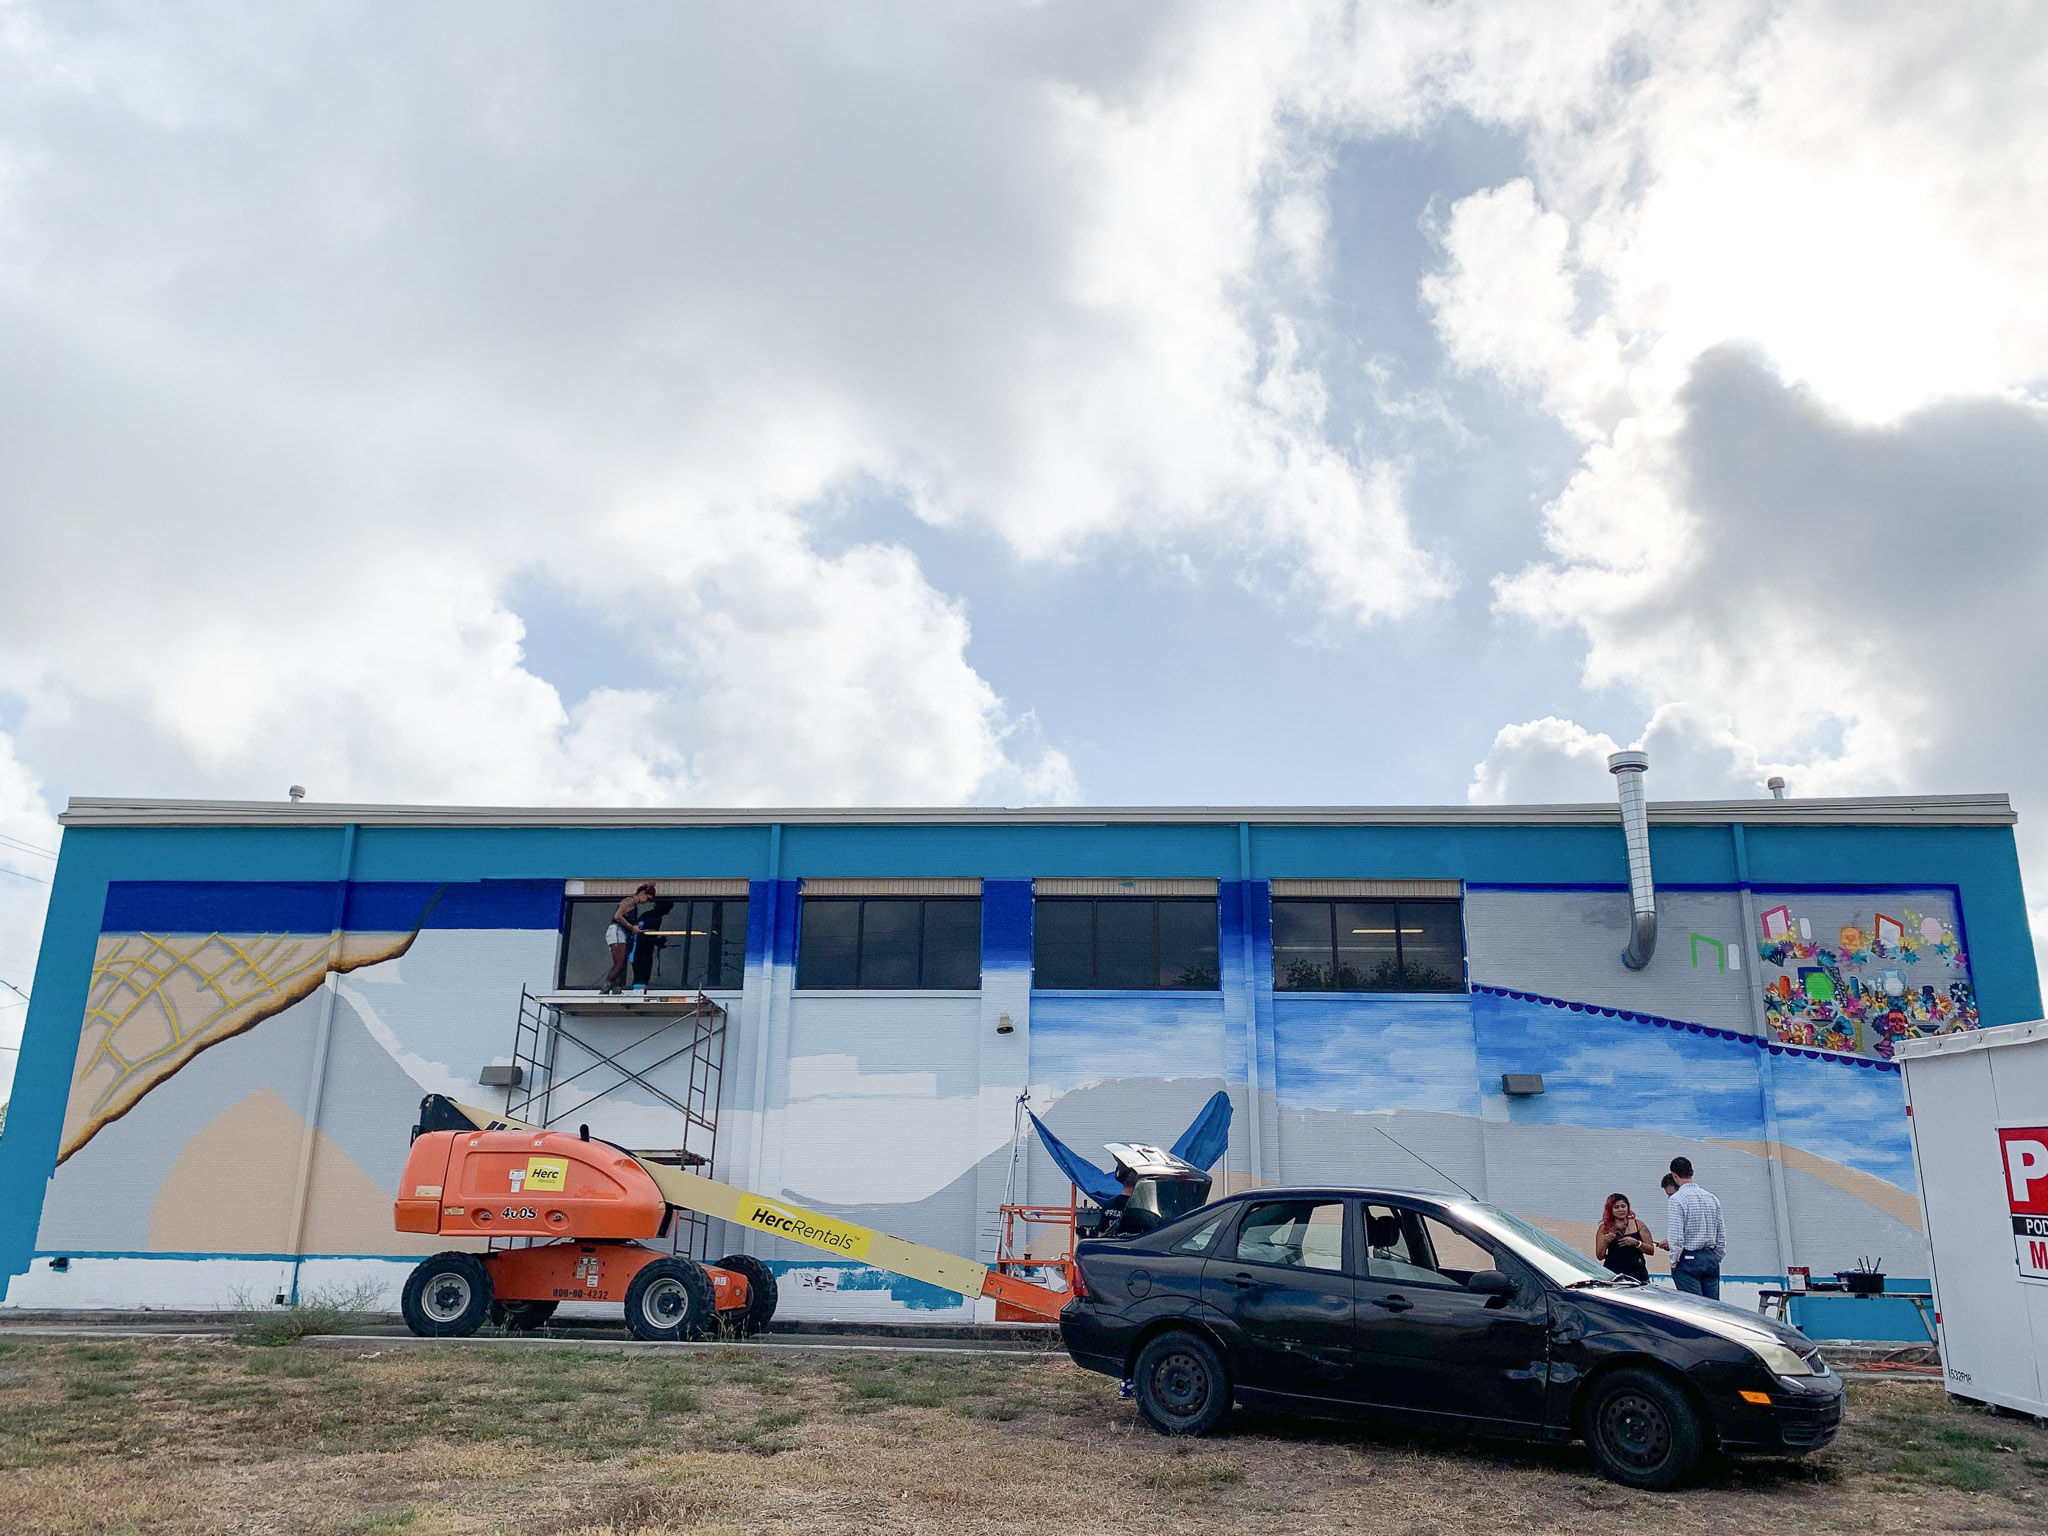 Local artists continue work on a road safety awareness mural on the side of Fire Station #26 at 4140 Culebra Rd.